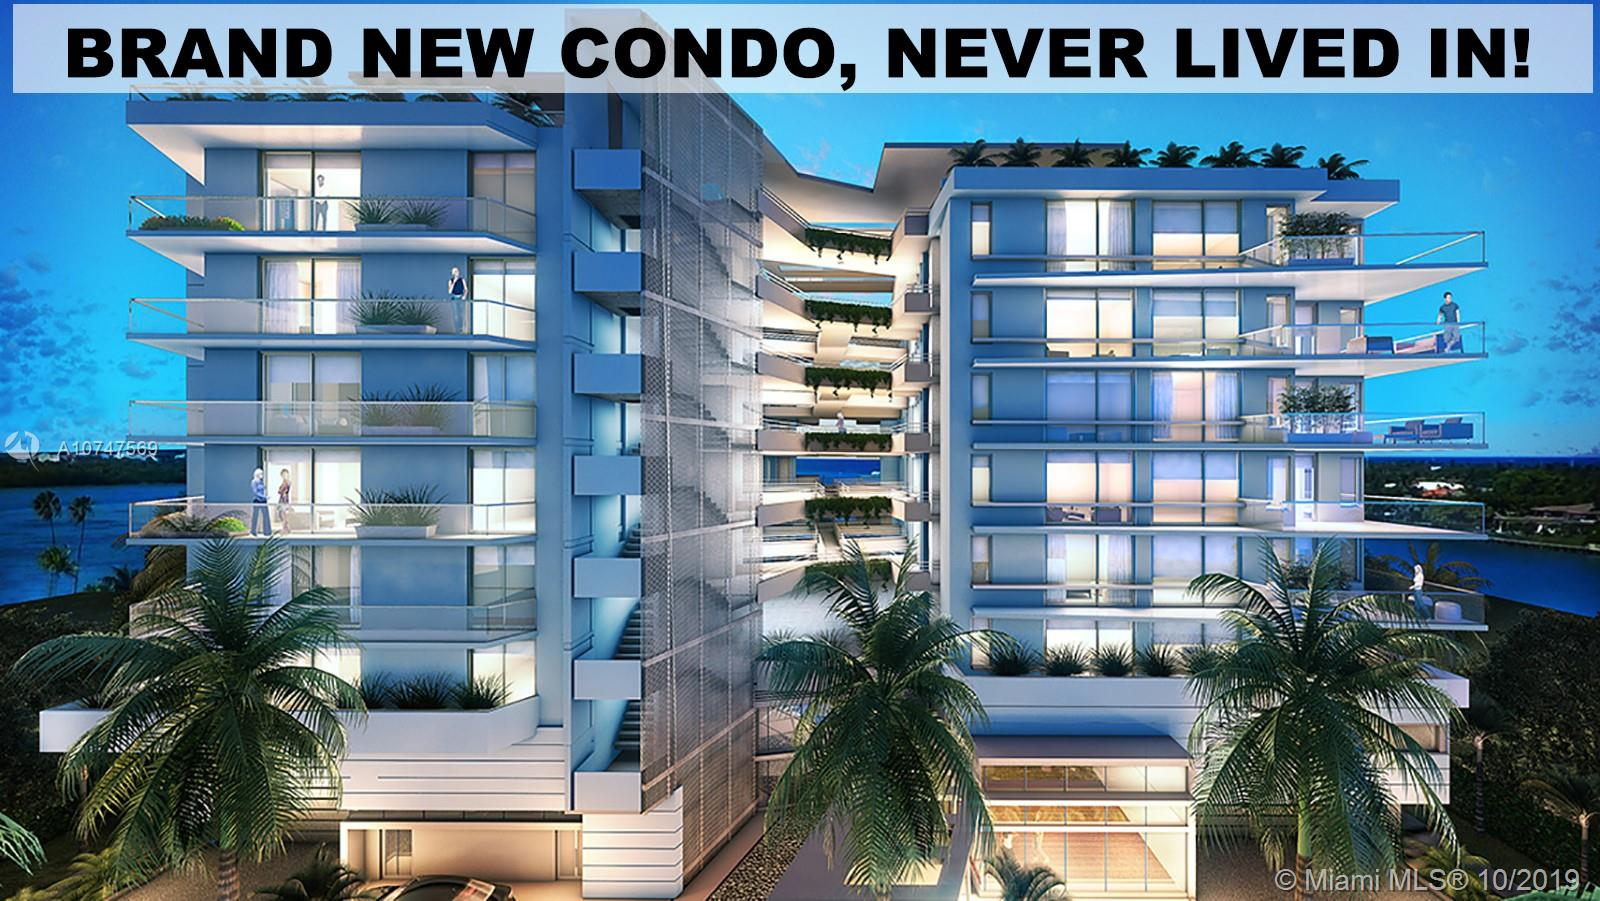 """BRAND NEW CONDO, NEVER LIVED IN! Large 2 Beds & 2 Baths with partial water view. 2 covered parking spaces + 1 storage cage. Complete Kitchen with top of the line appliances including wine cooler and washer/dryer. The Palms Condo is a boutique waterfront building with a rooftop pool deck, hot tub, rooftop BBQ/entertainment area with amazing views. Located in Bay Harbor Islands, one of Miami's most desirable locations. Walk to """"A"""" rated Ruth K. school (K-8), just minutes to the world-famous Bal Harbour Shops and the sandy beaches of Bal Harbour and Surfside.  The island is perfect for families; playgrounds throughout the island, tennis courts, bicycle paths, citibike rental adjacent to bldg. A one of a kind property in a one of a kind neighborhood. Easy to Show!"""